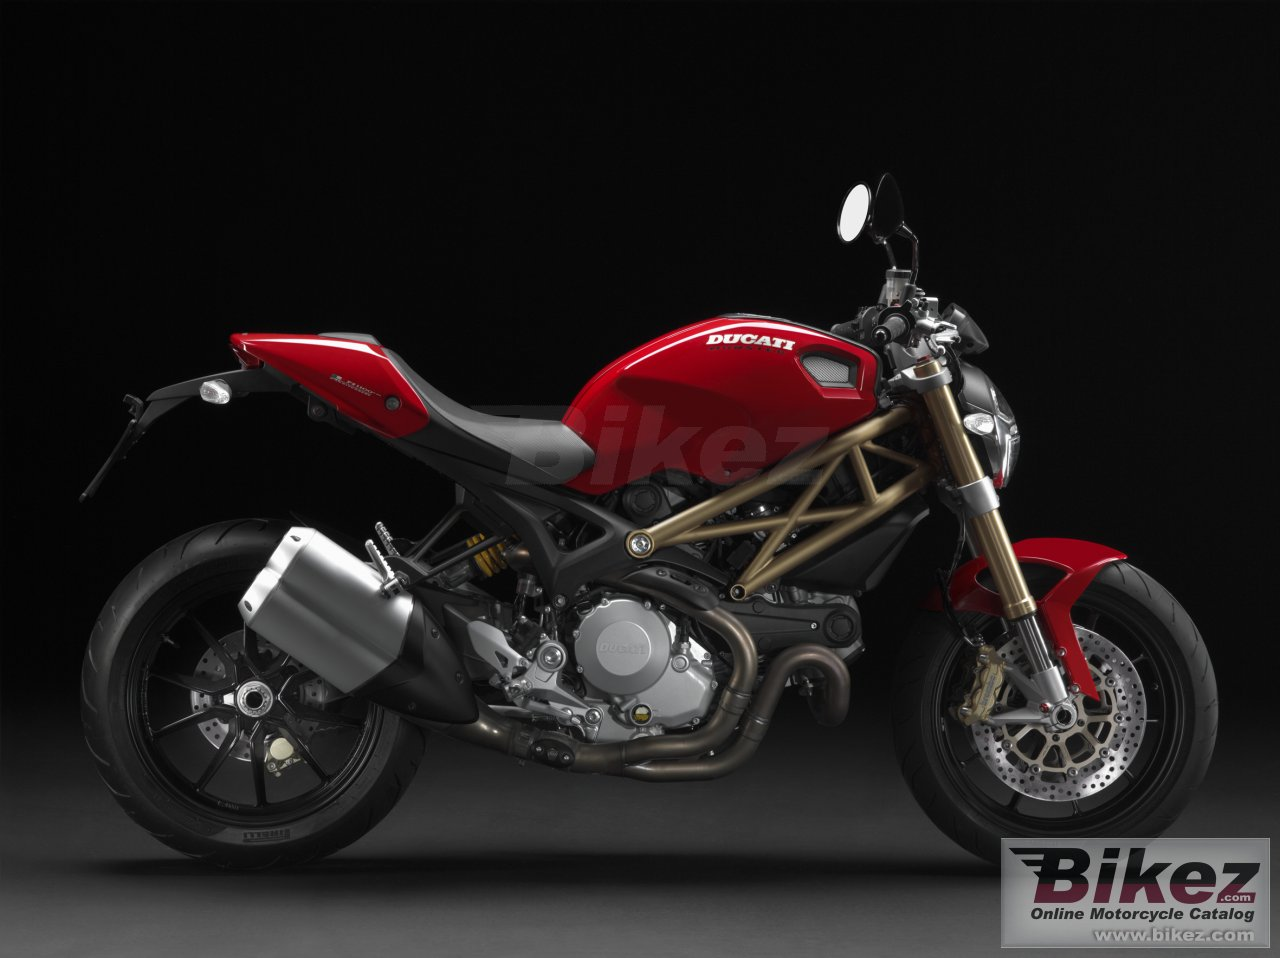 Big Ducati monster 1100 evo 20th anniversary picture and wallpaper from Bikez.com